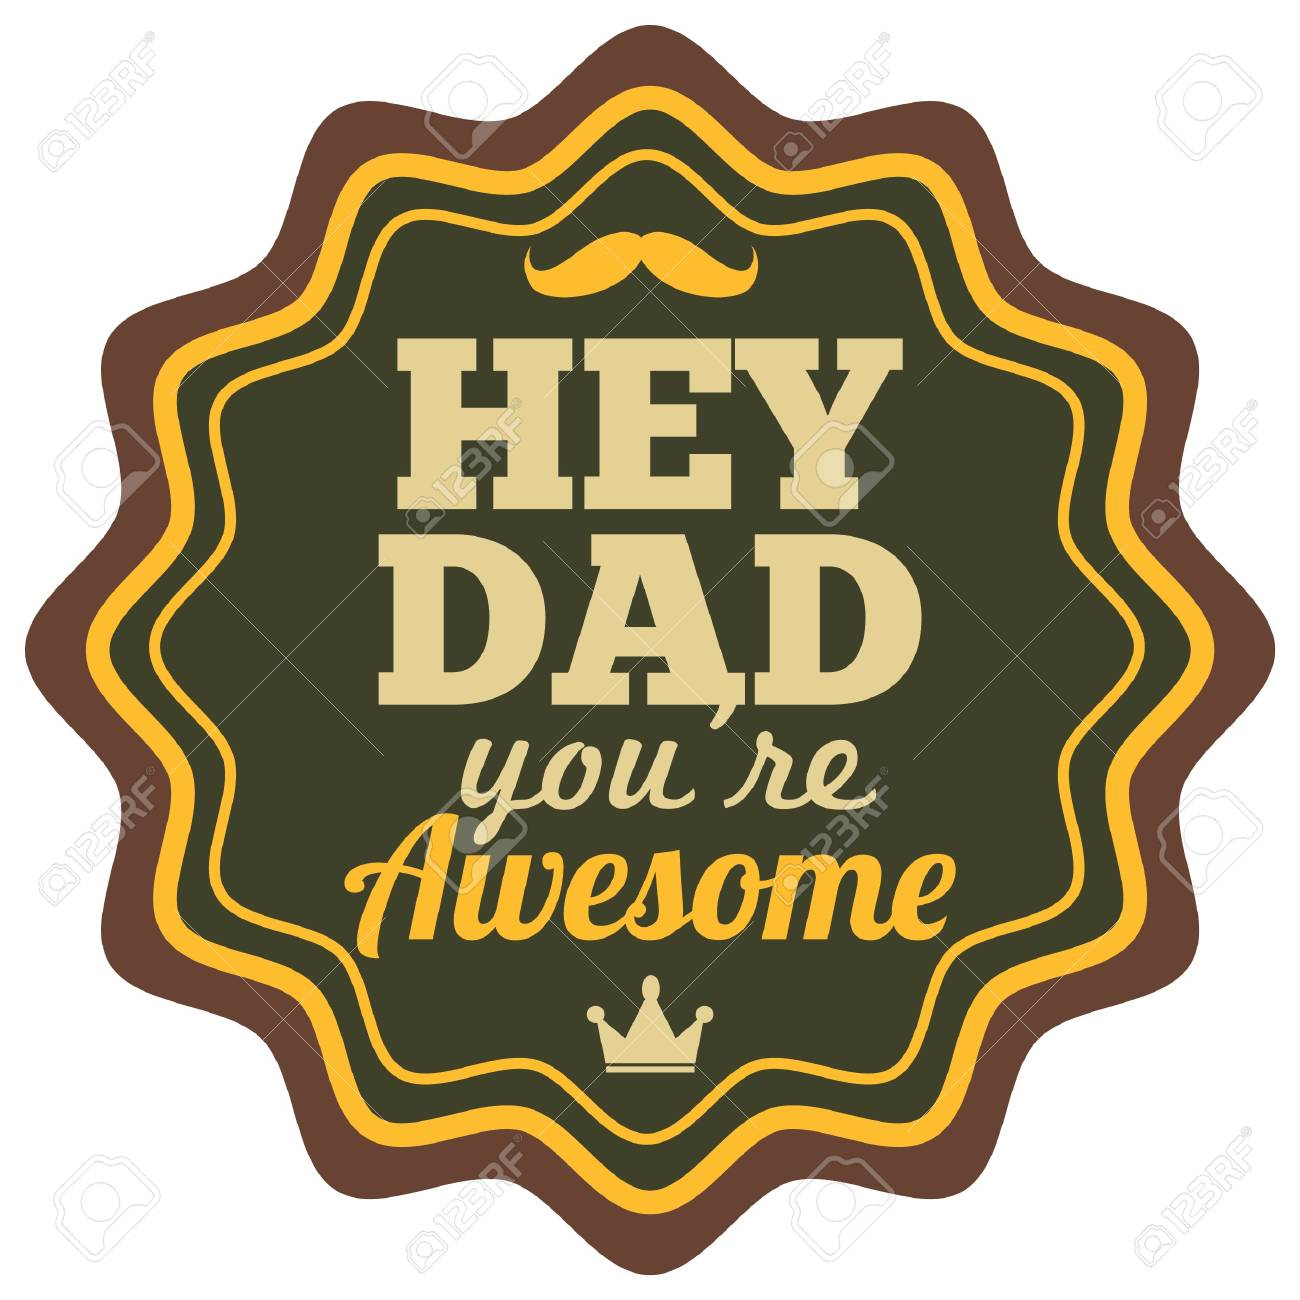 hight resolution of hey dad you re awesome label stock vector 79222542